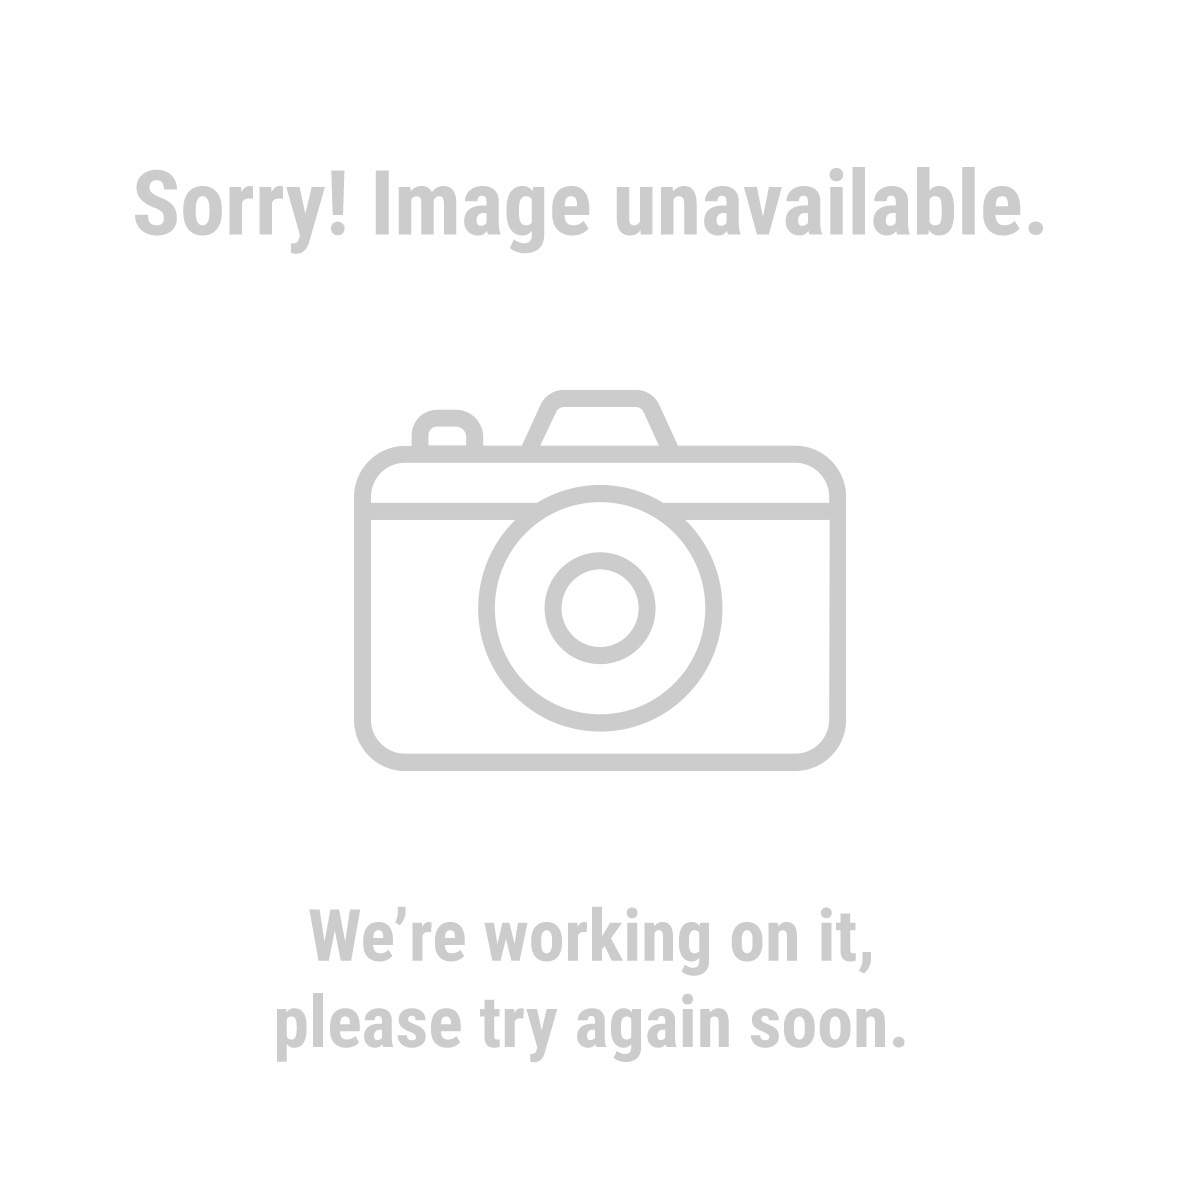 Pittsburgh Automotive 96177 Fender Cover Work Mat